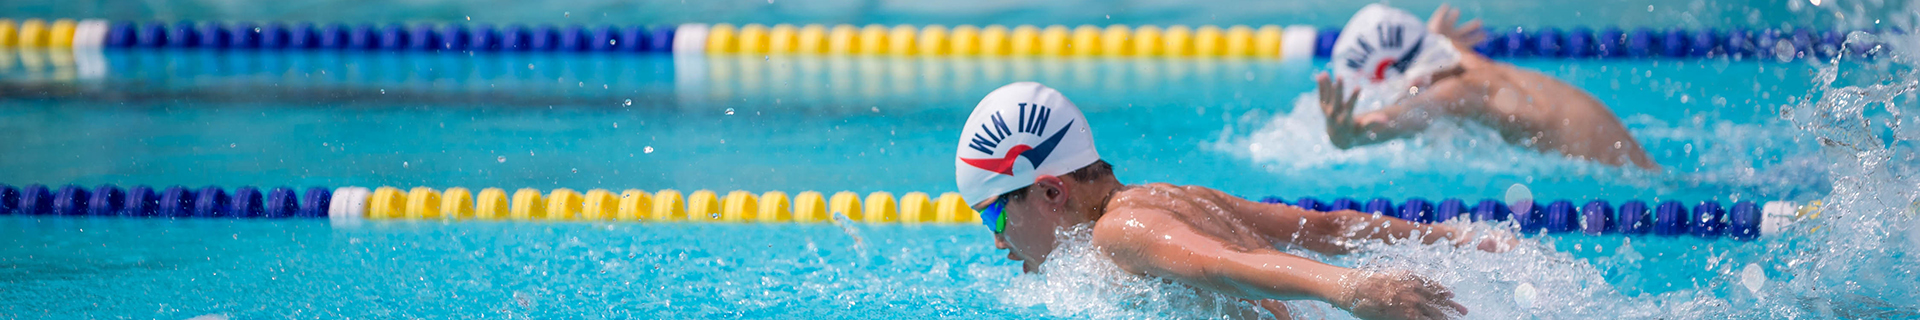 Win Tin Swimming Club - 27th Swimming Gala 1